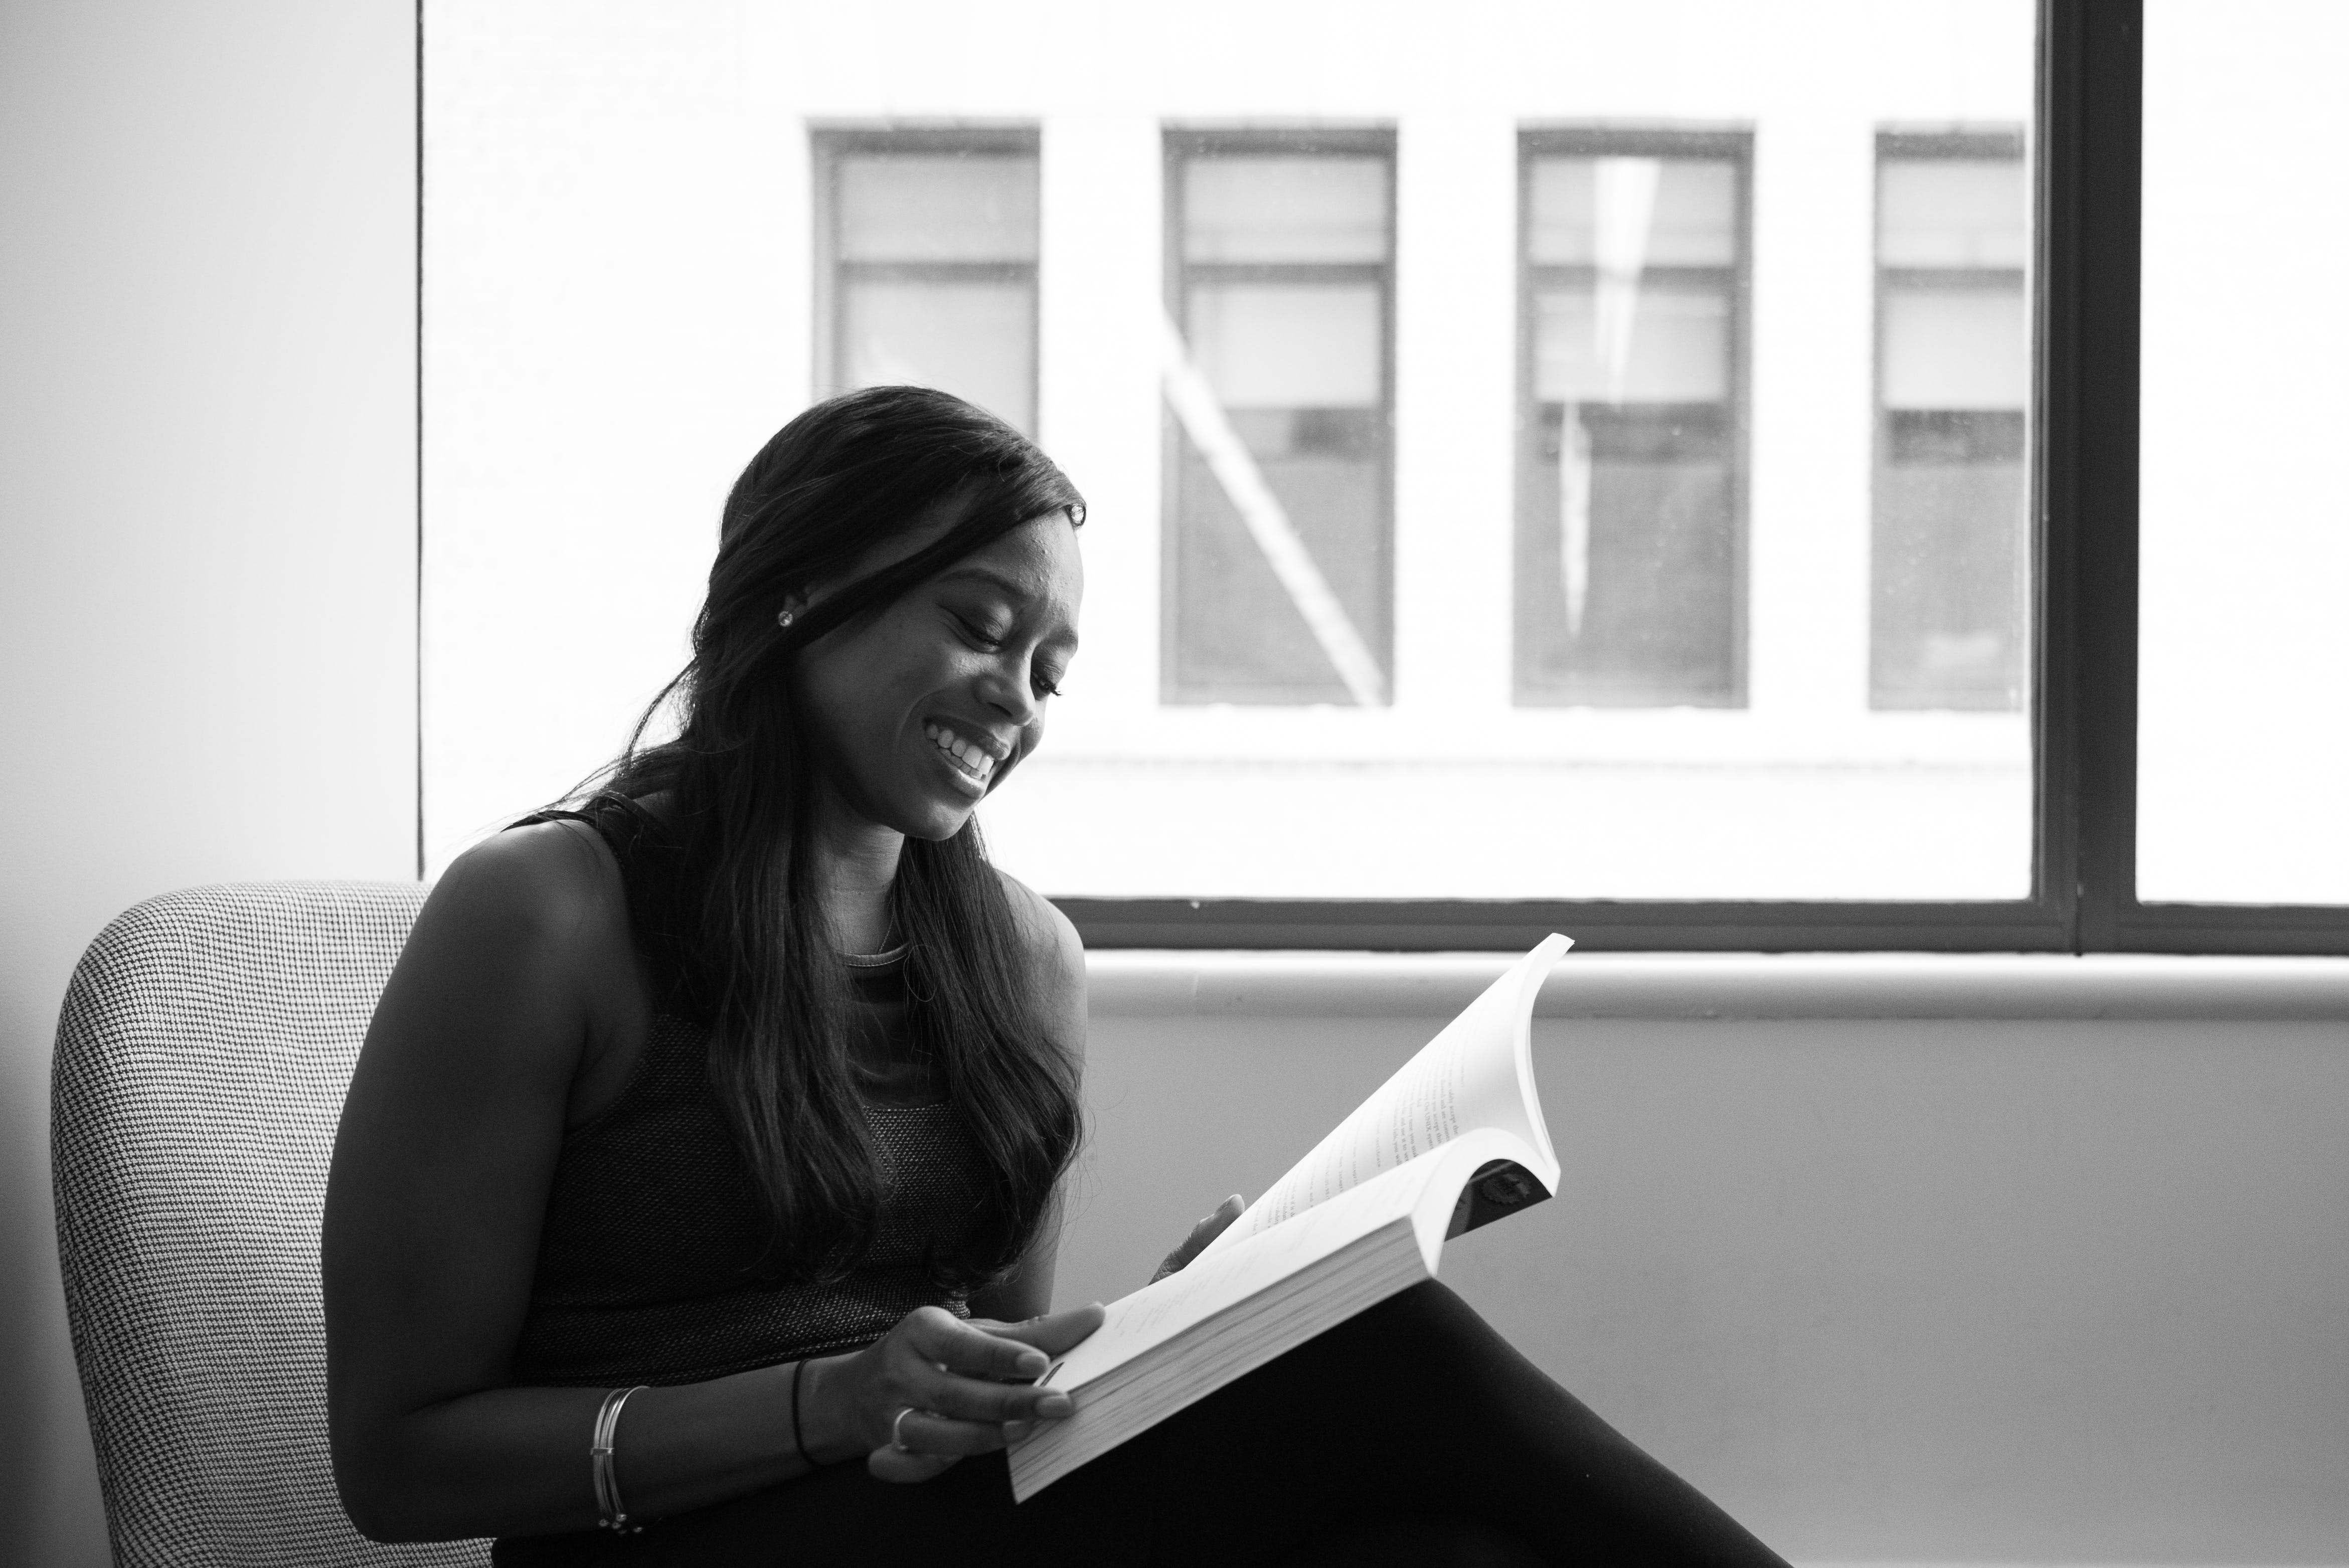 Grayscale Photo of Smiling Woman Reading Book